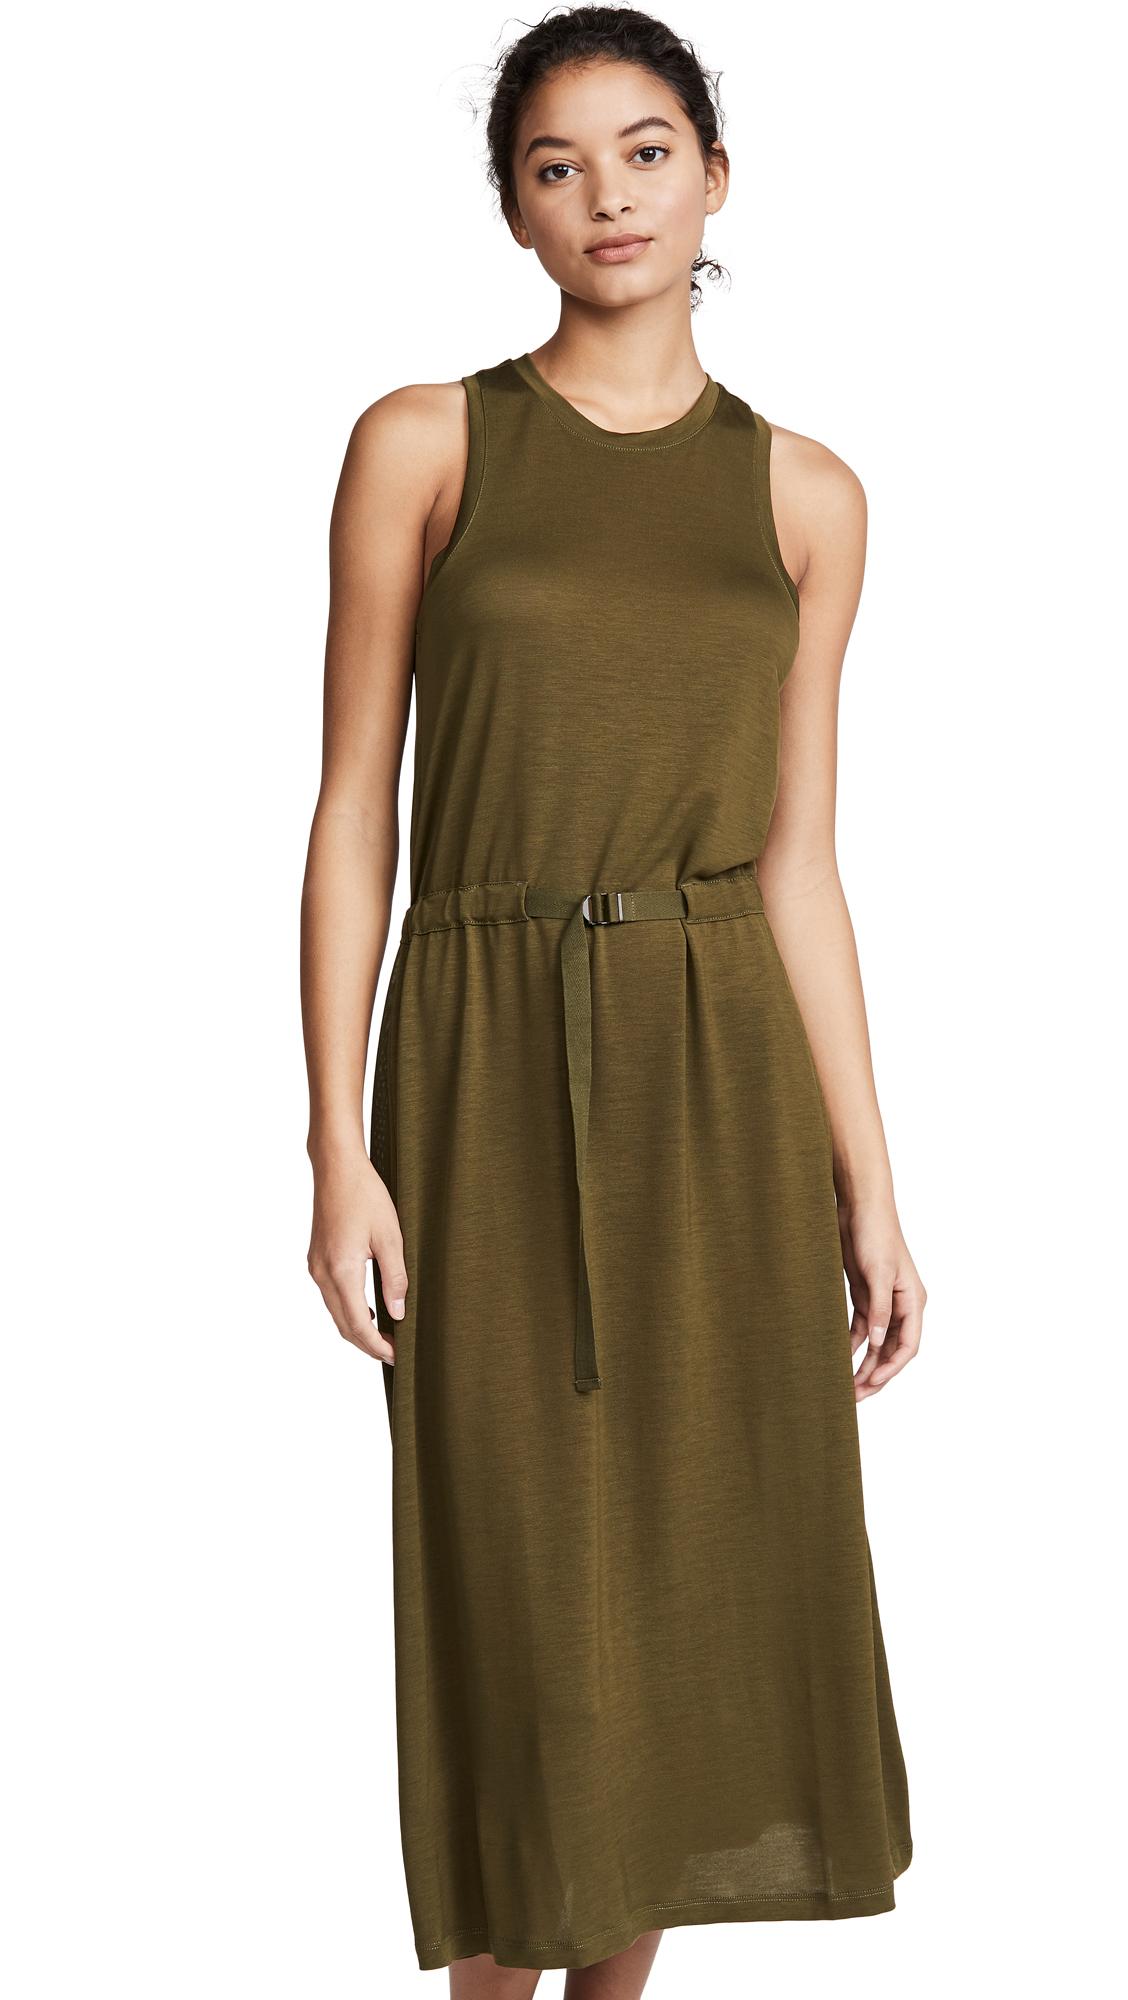 Rag & Bone Rower Belted Midi Dress - 25% Off Sale